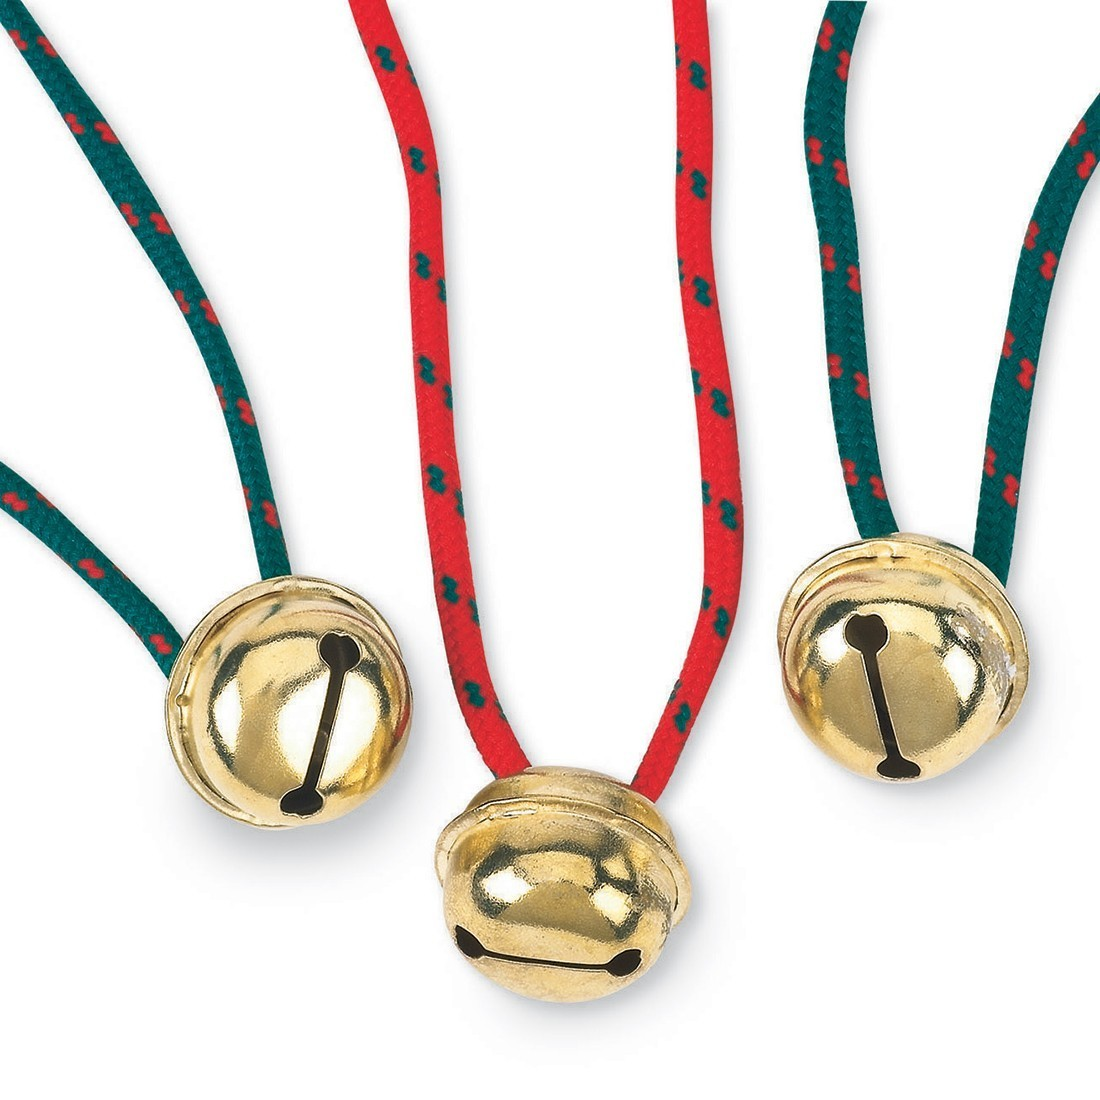 Jingle Bell Necklaces [image]